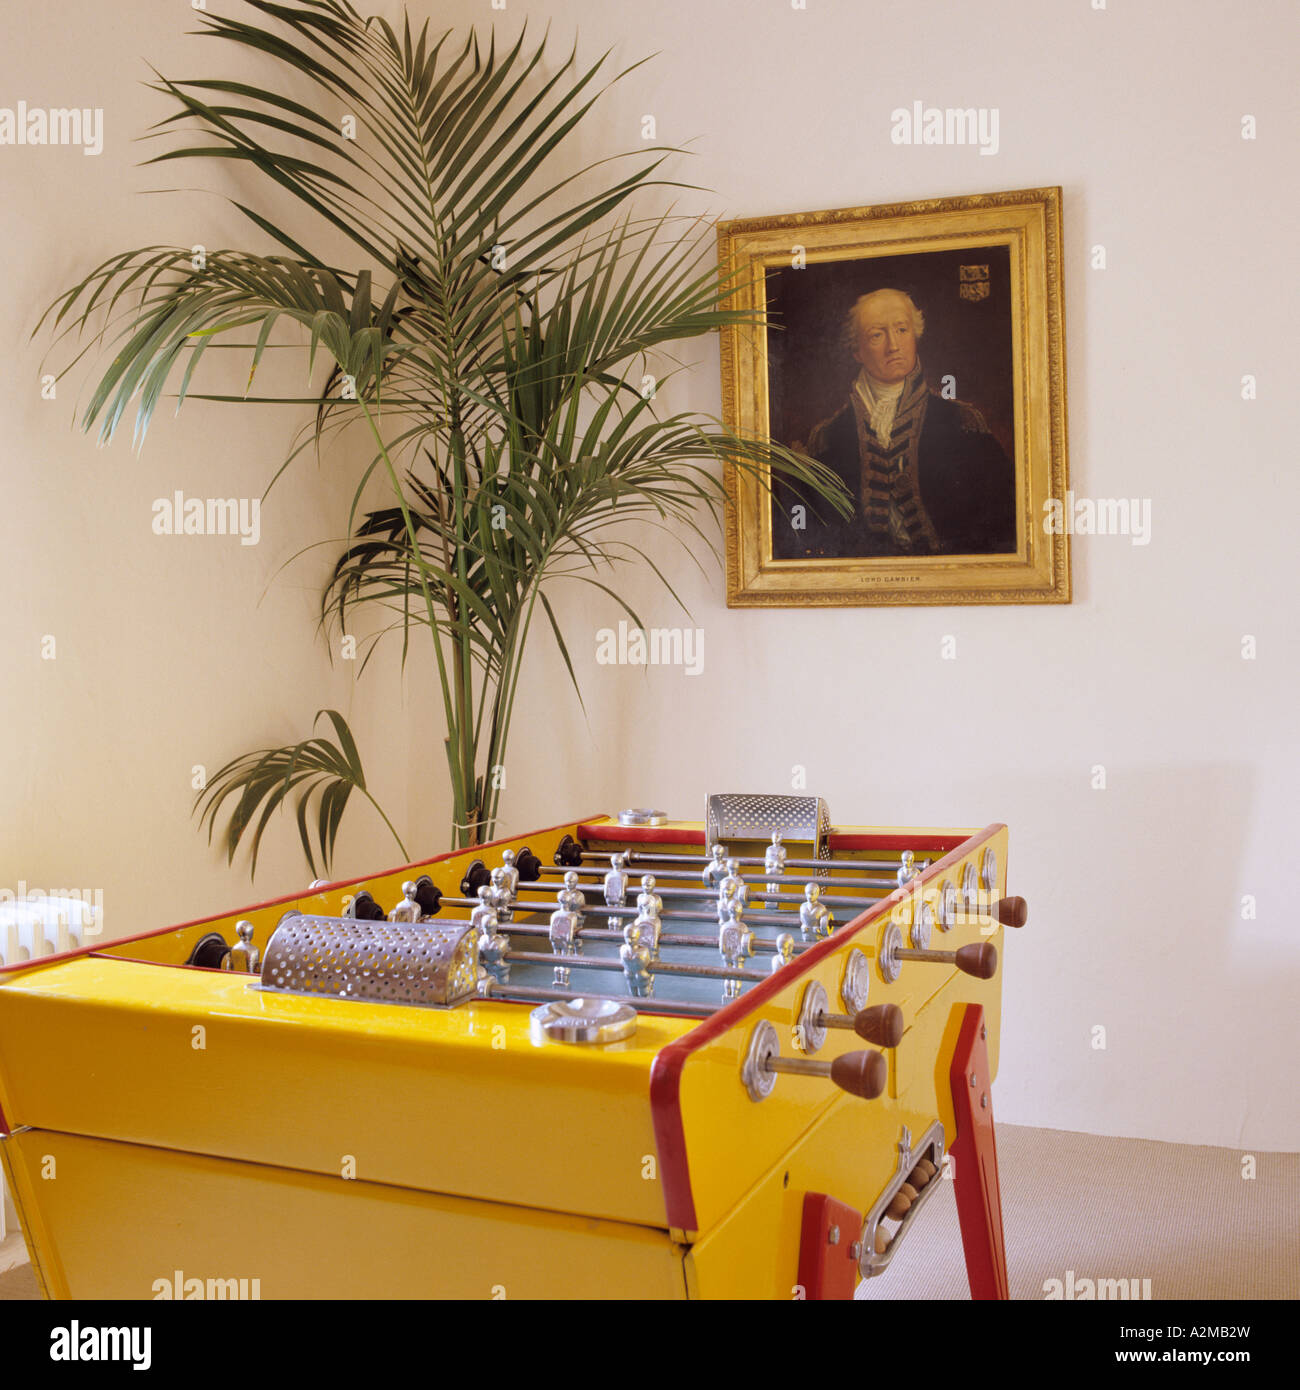 Table football, indoor palm and artwork - Stock Image